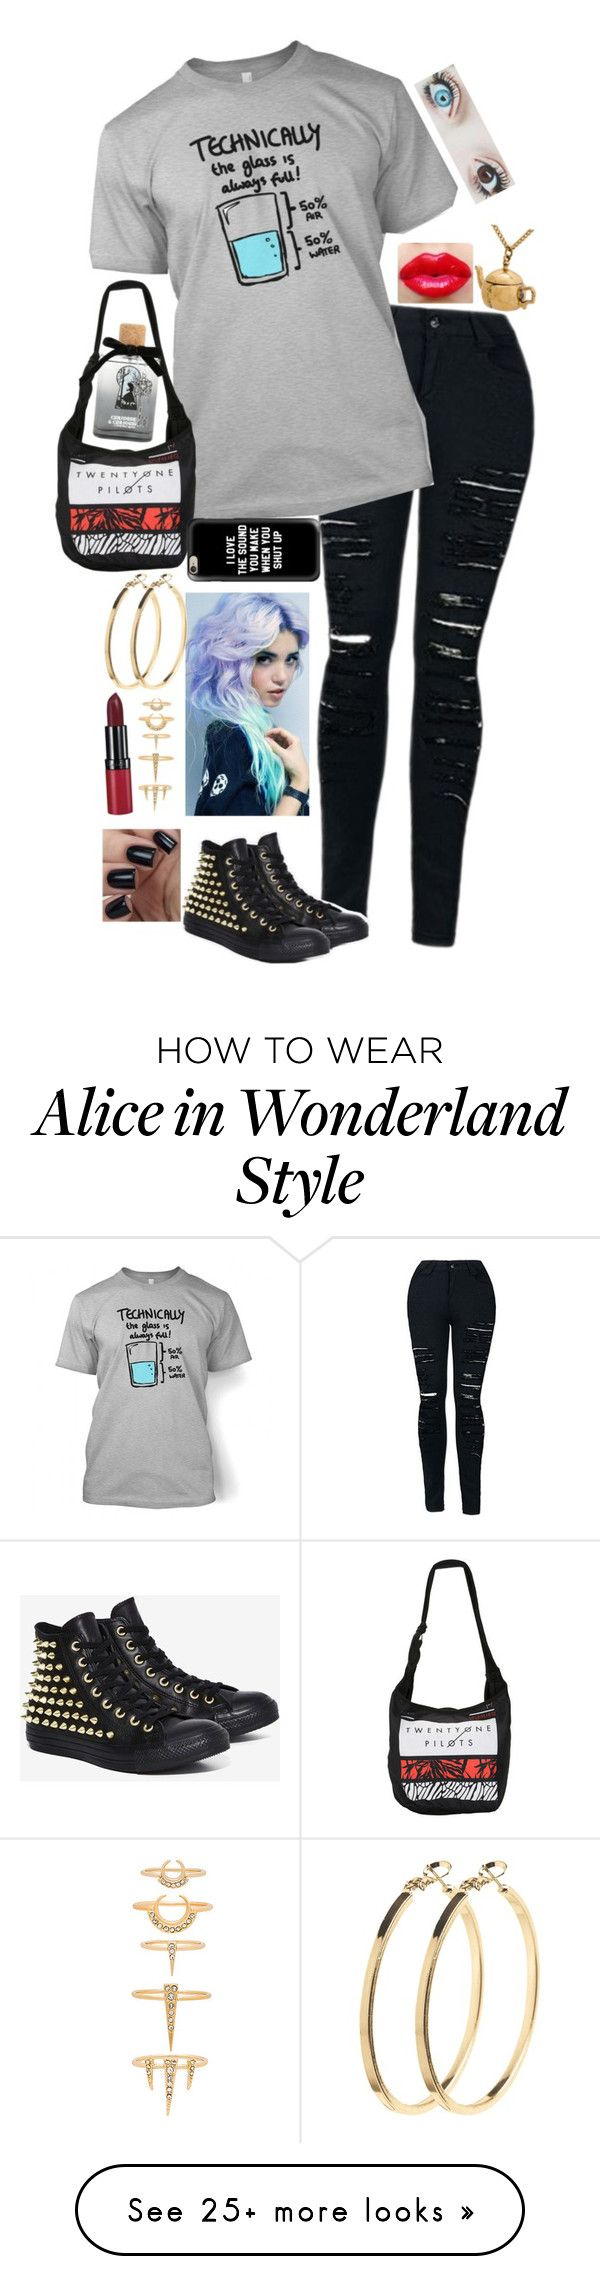 """Untitled #528"" by lilrawr on Polyvore featuring Converse, Casetify, Pieces, Luv Aj, Disney and Rimmel"